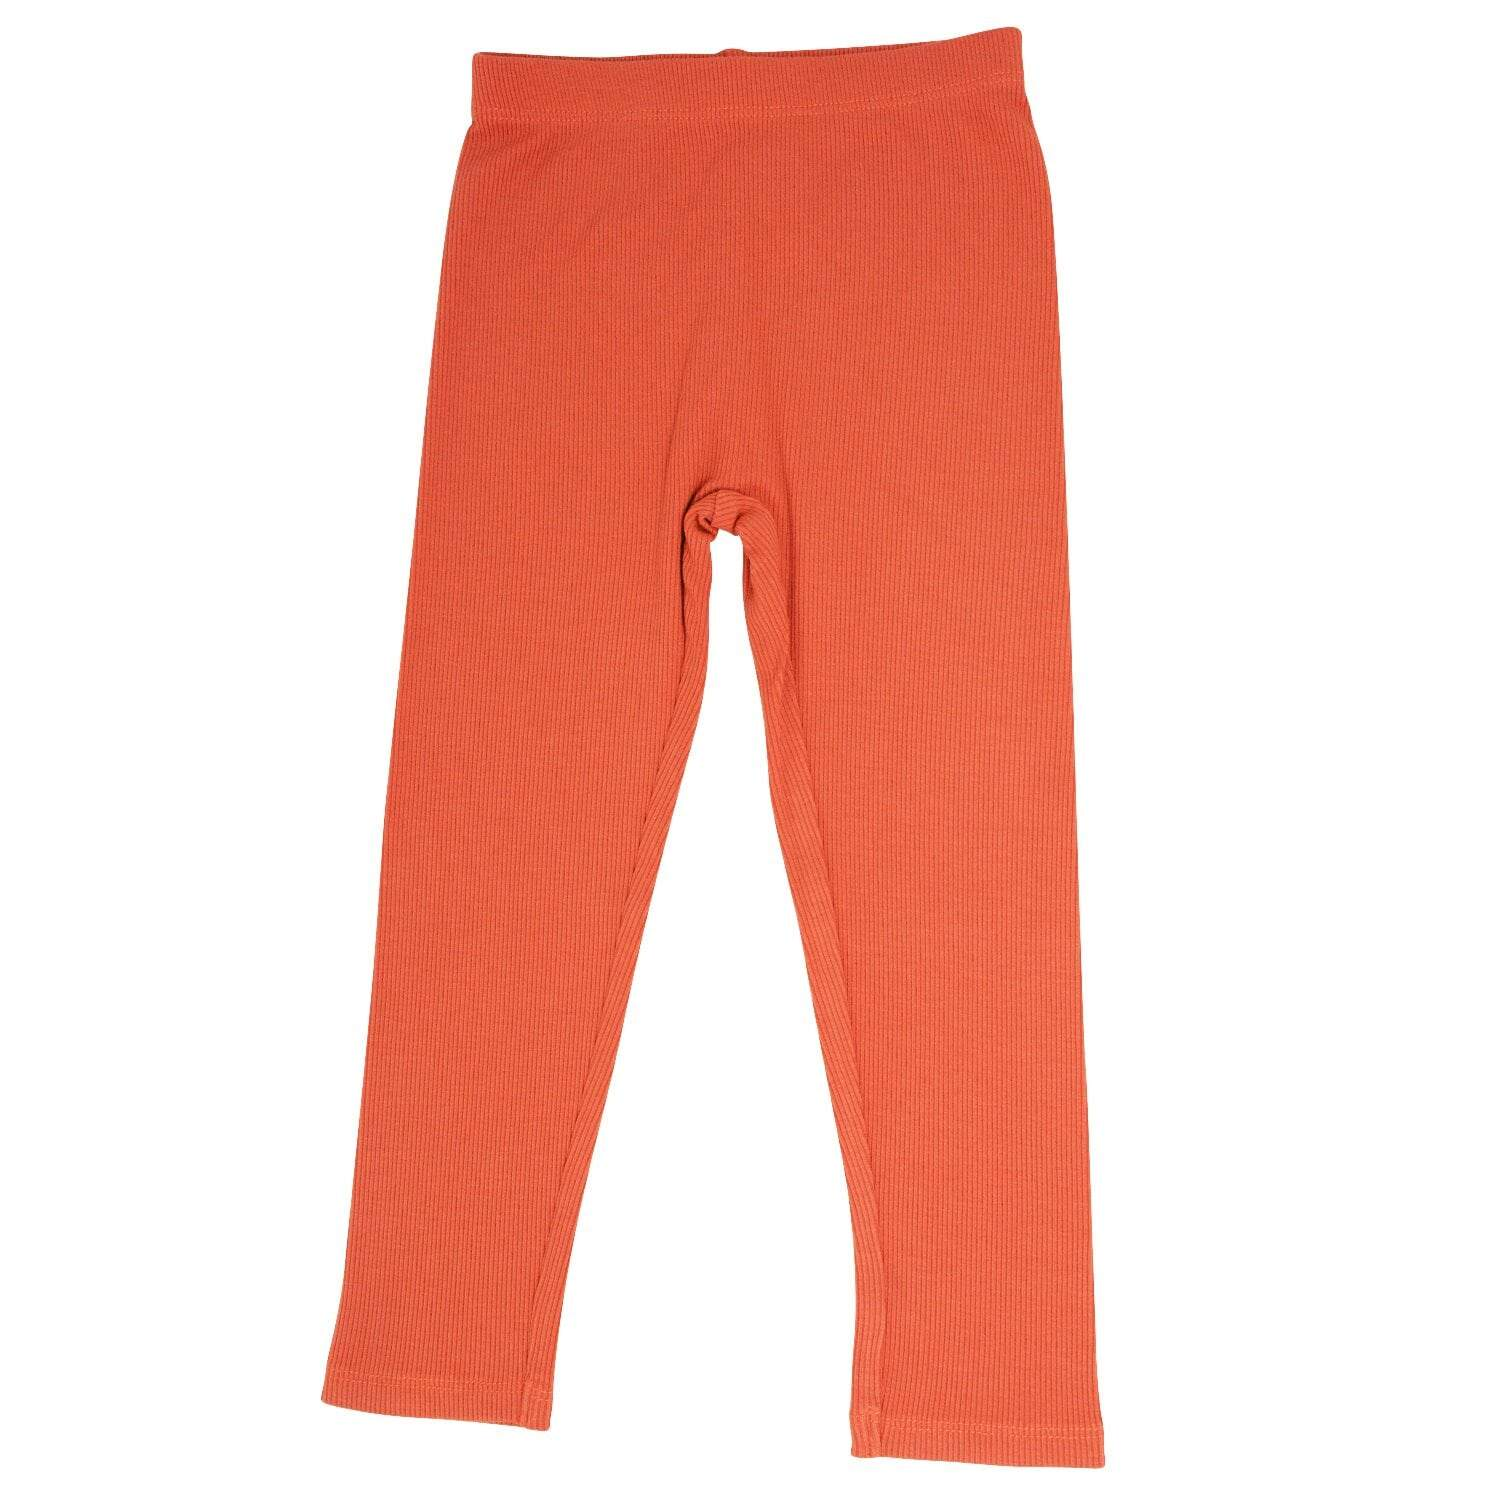 Leggings - Apricot Ribbed - Sweet Bamboo